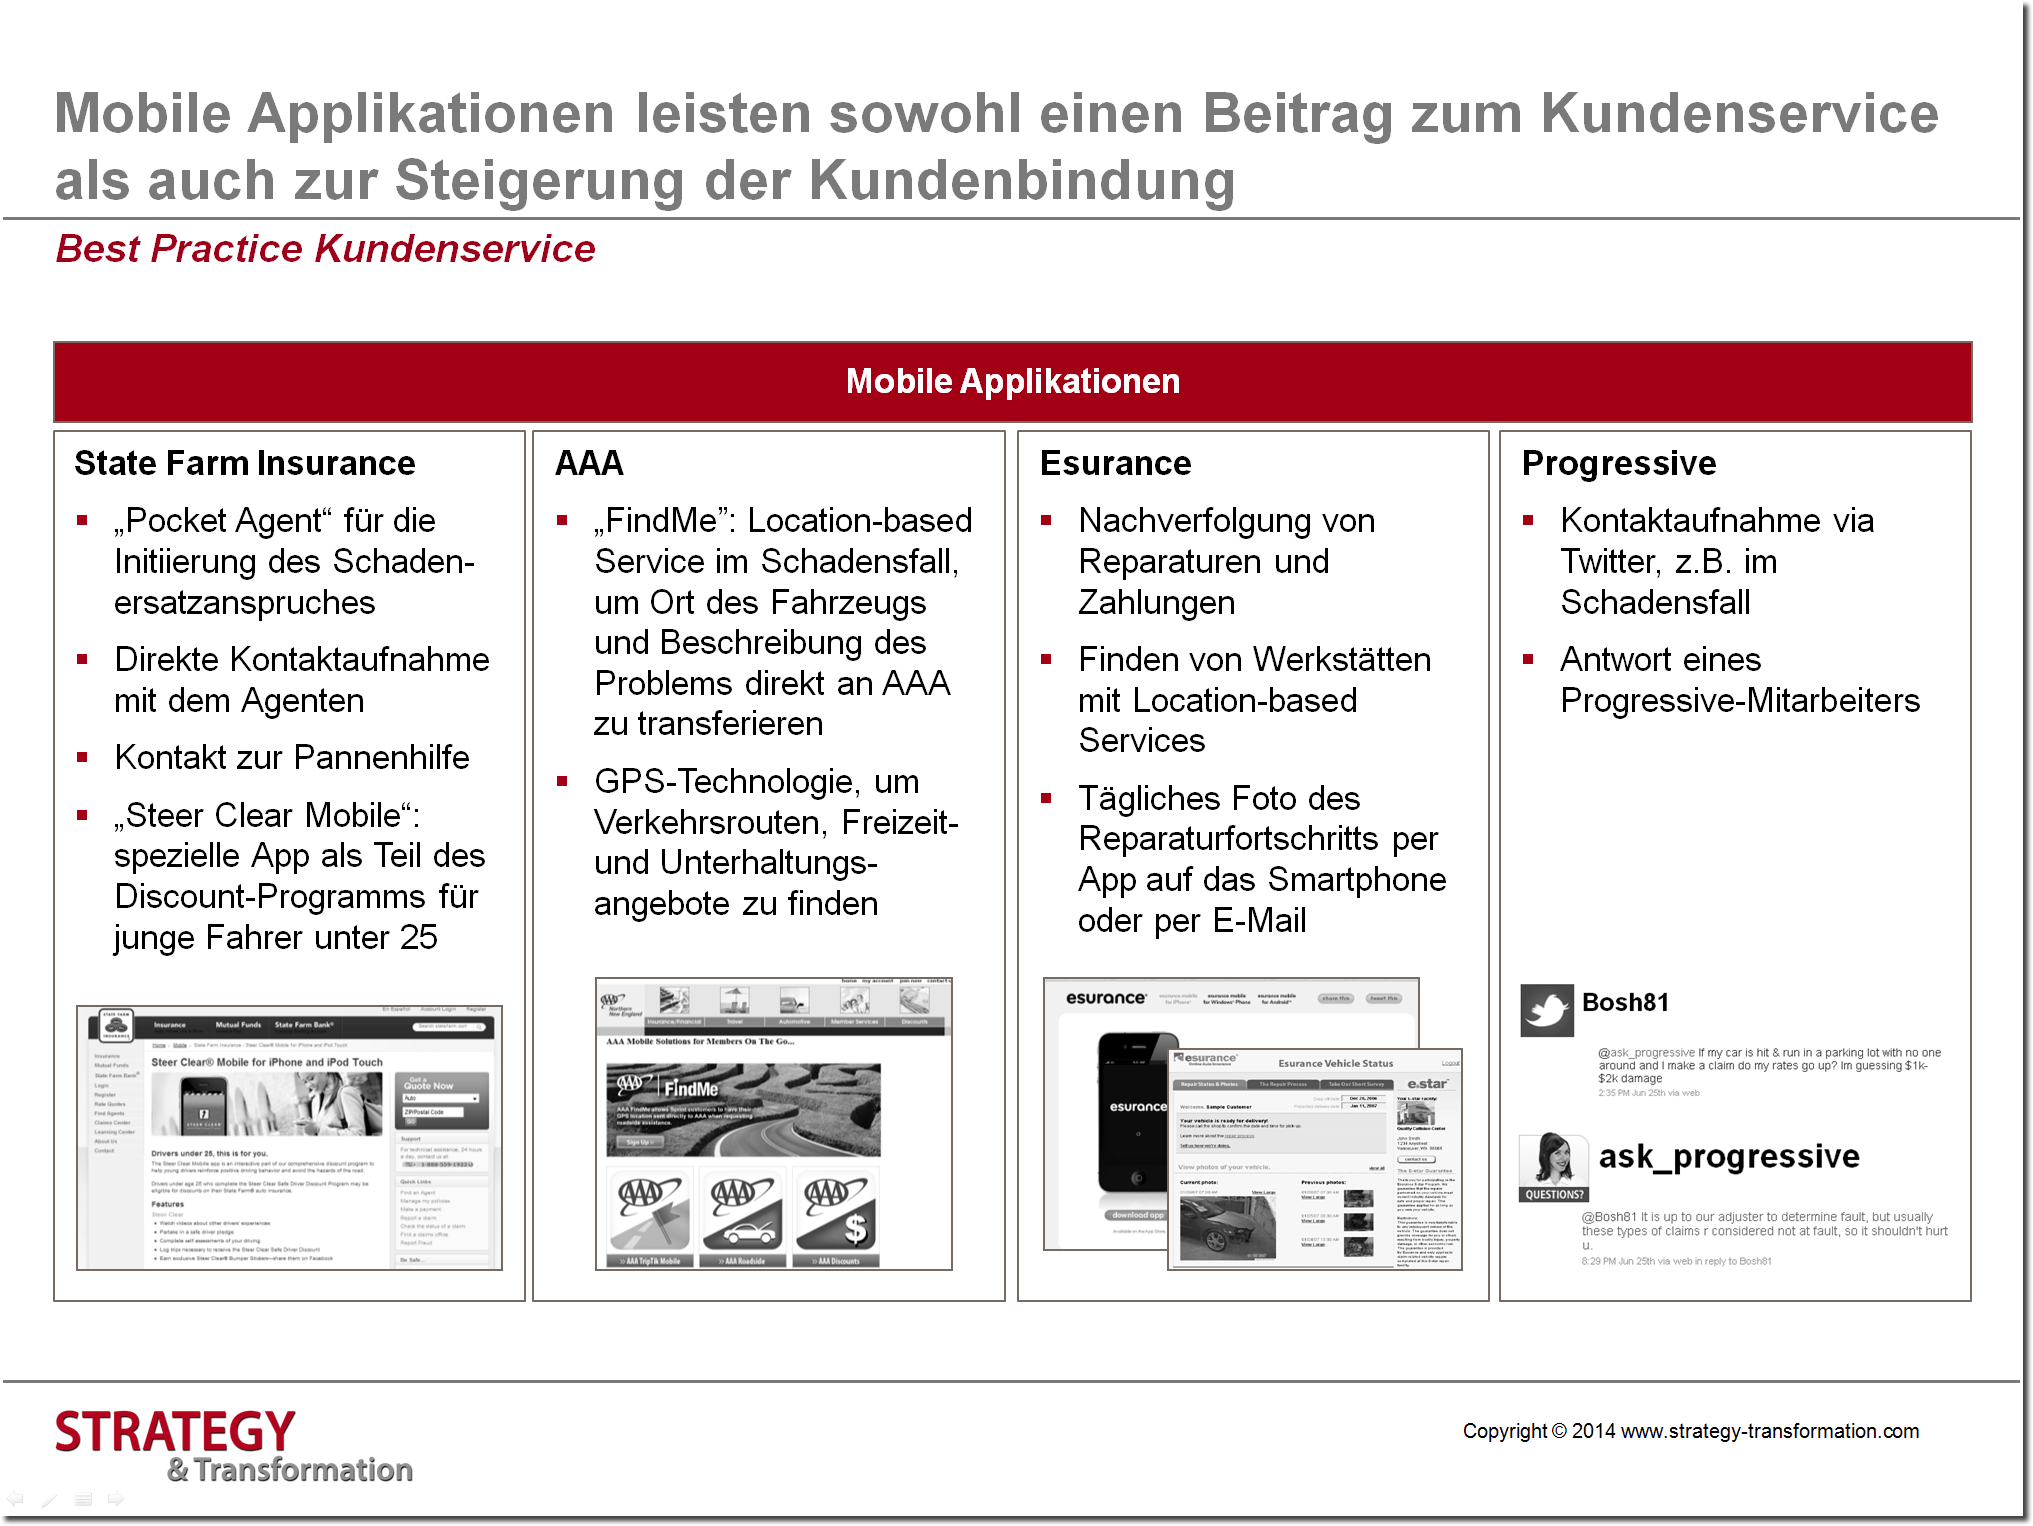 Digitale Transformation Versicherung_Best Practice Kundenservice